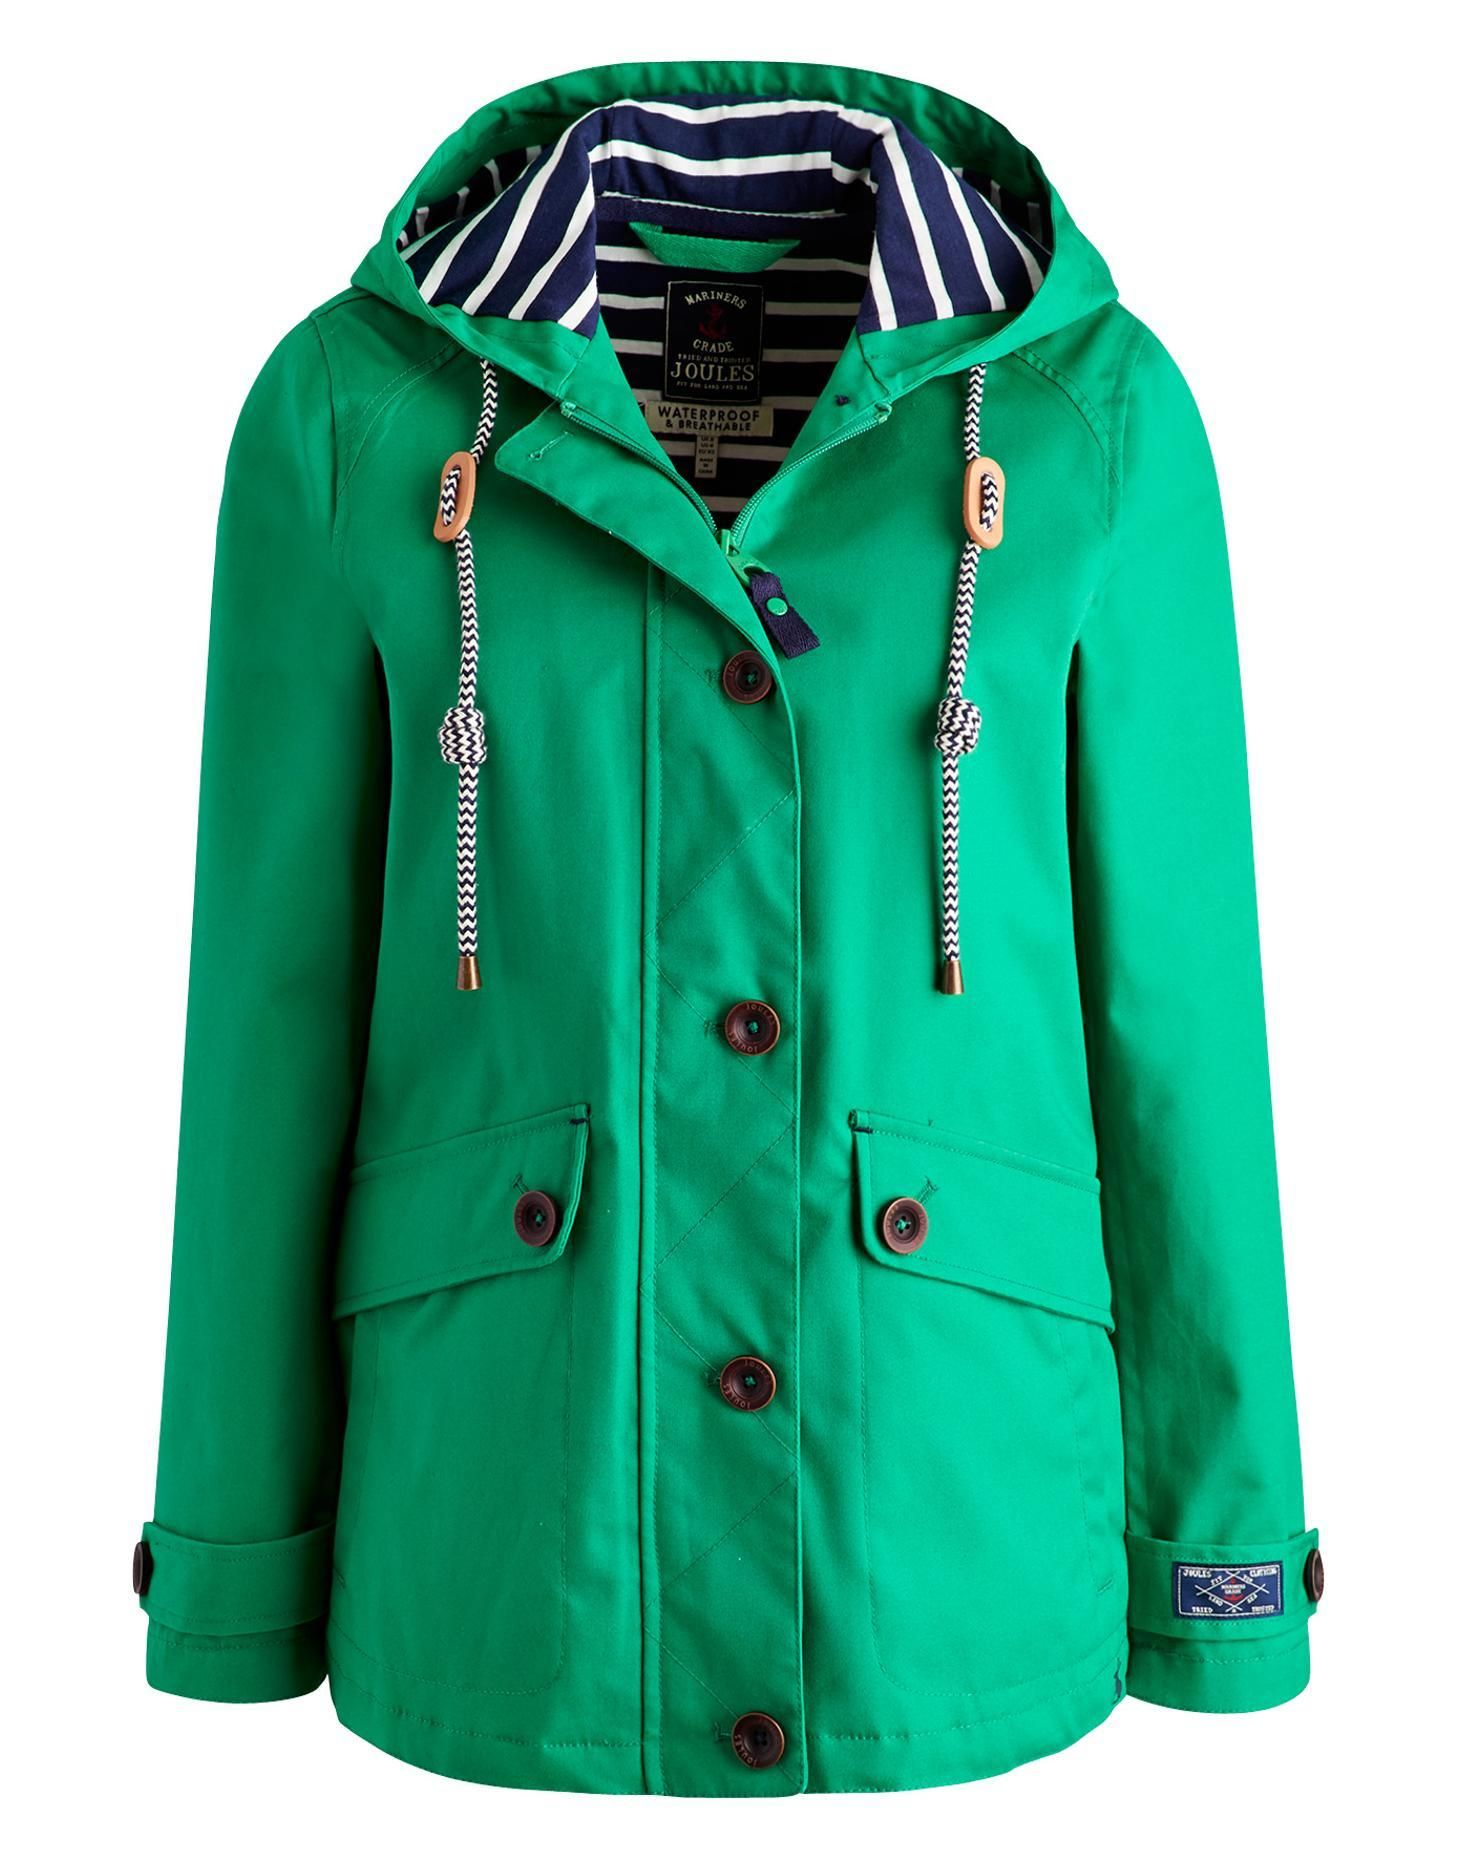 Joules Womens Waterproof Hooded Jacket, Bright Green. Part